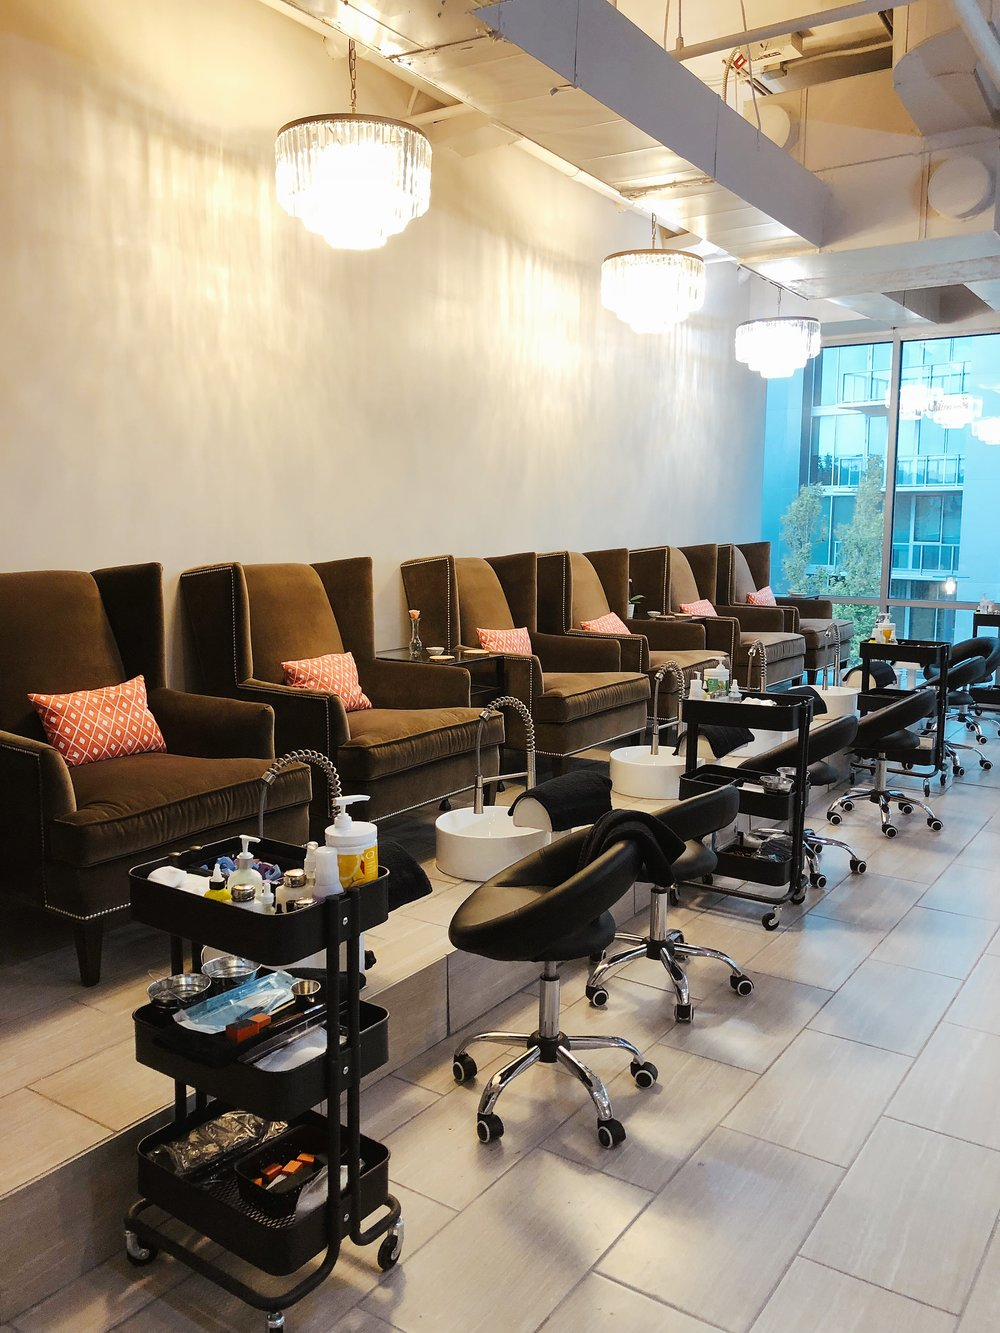 Aren't these pedicure chairs the dreamiest?